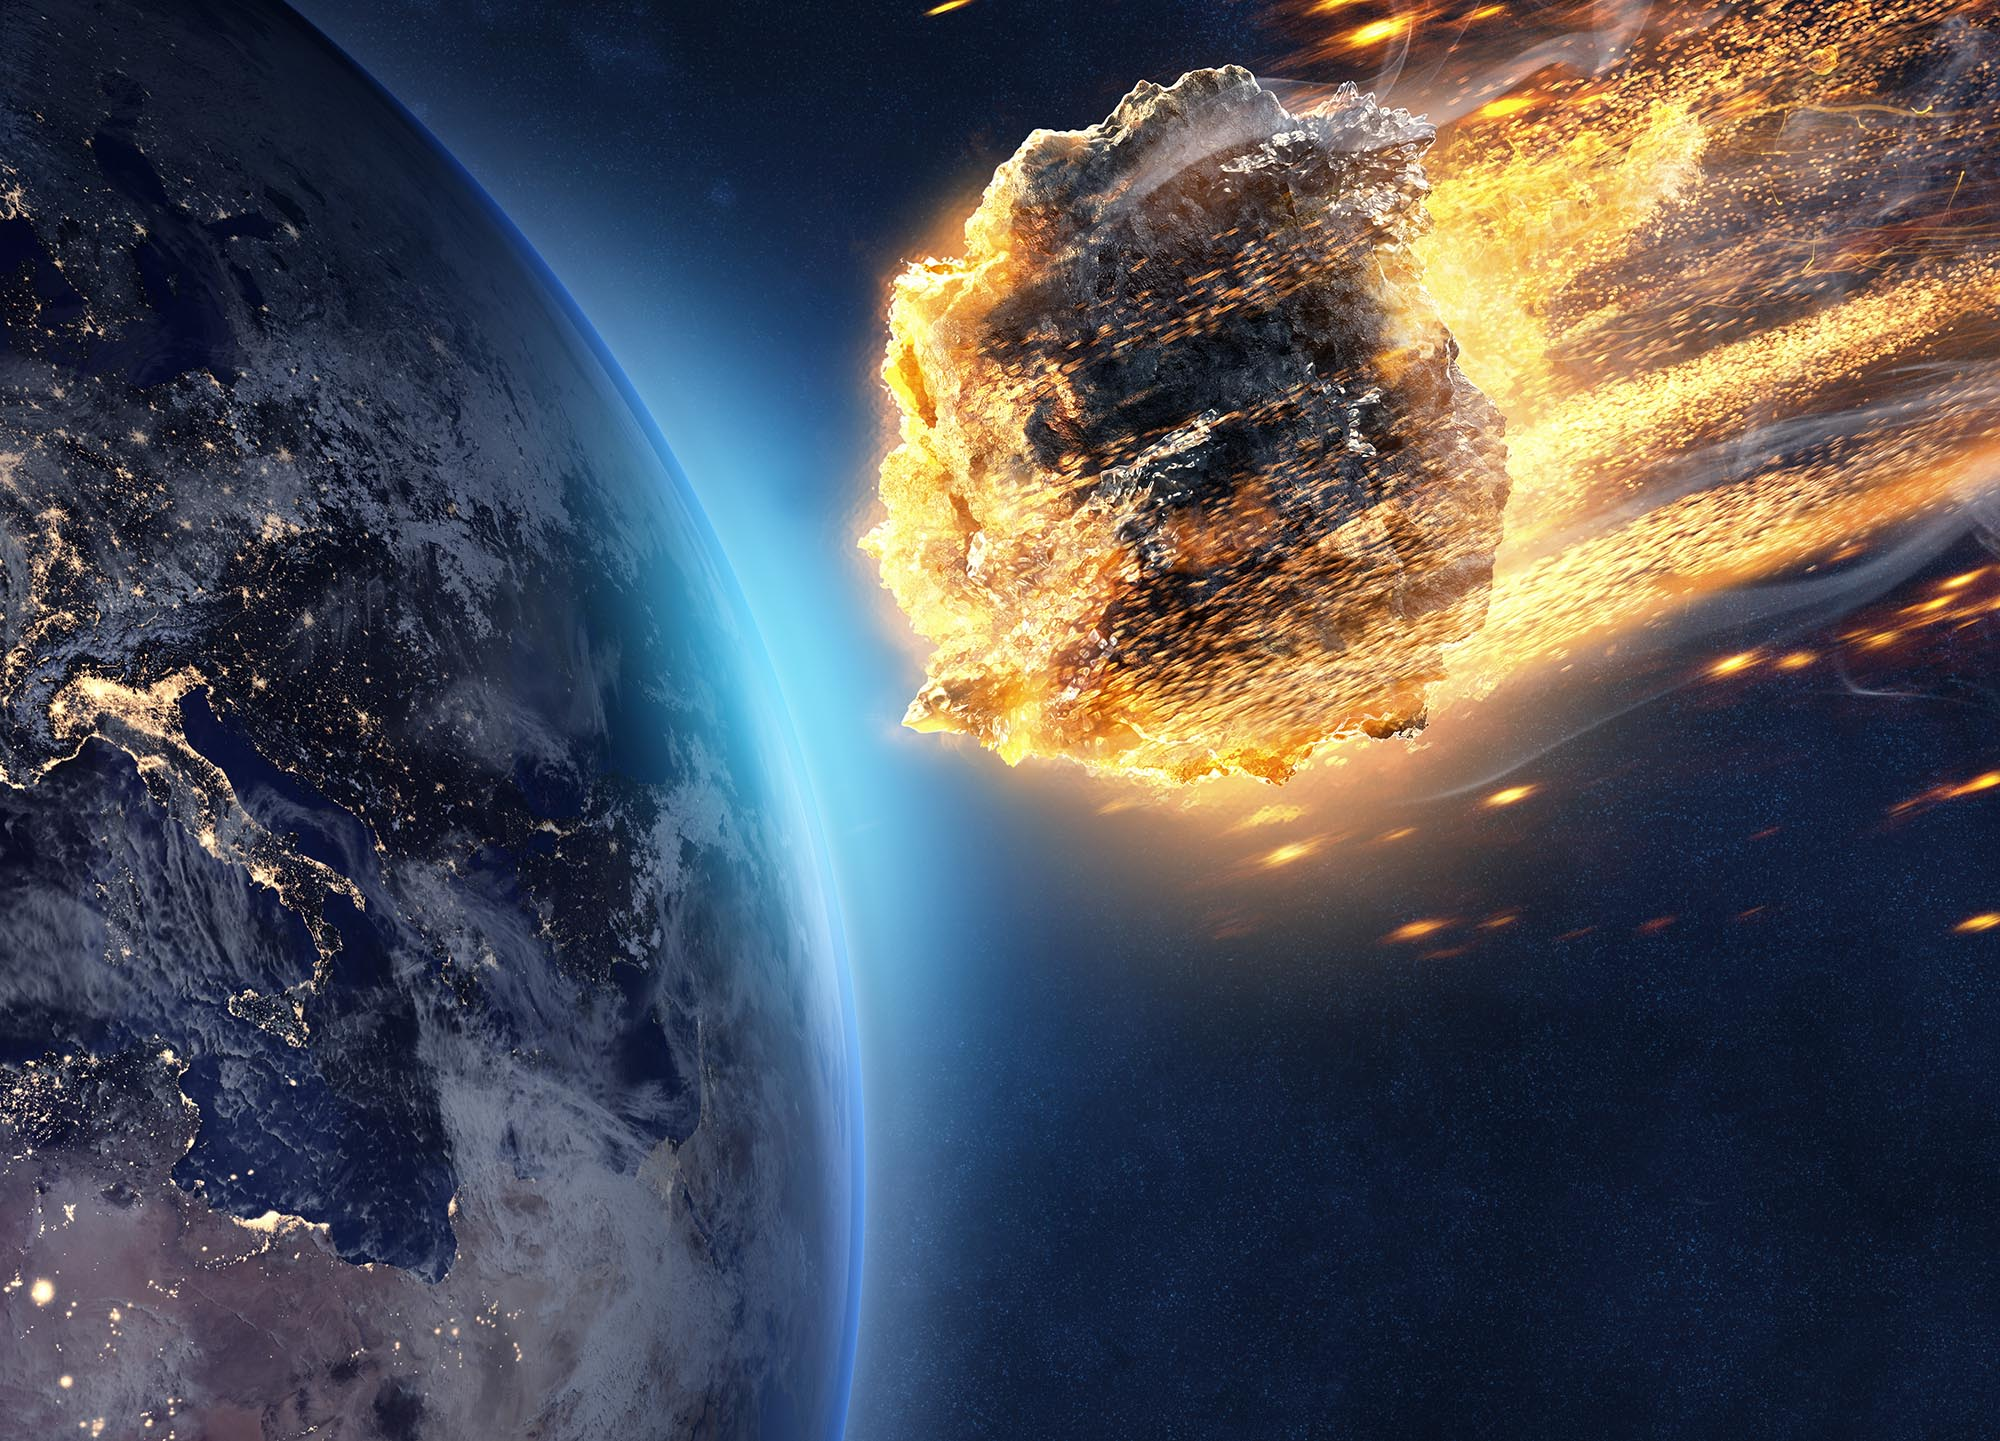 Avoiding a Potential Asteroid Impact Requires Planning